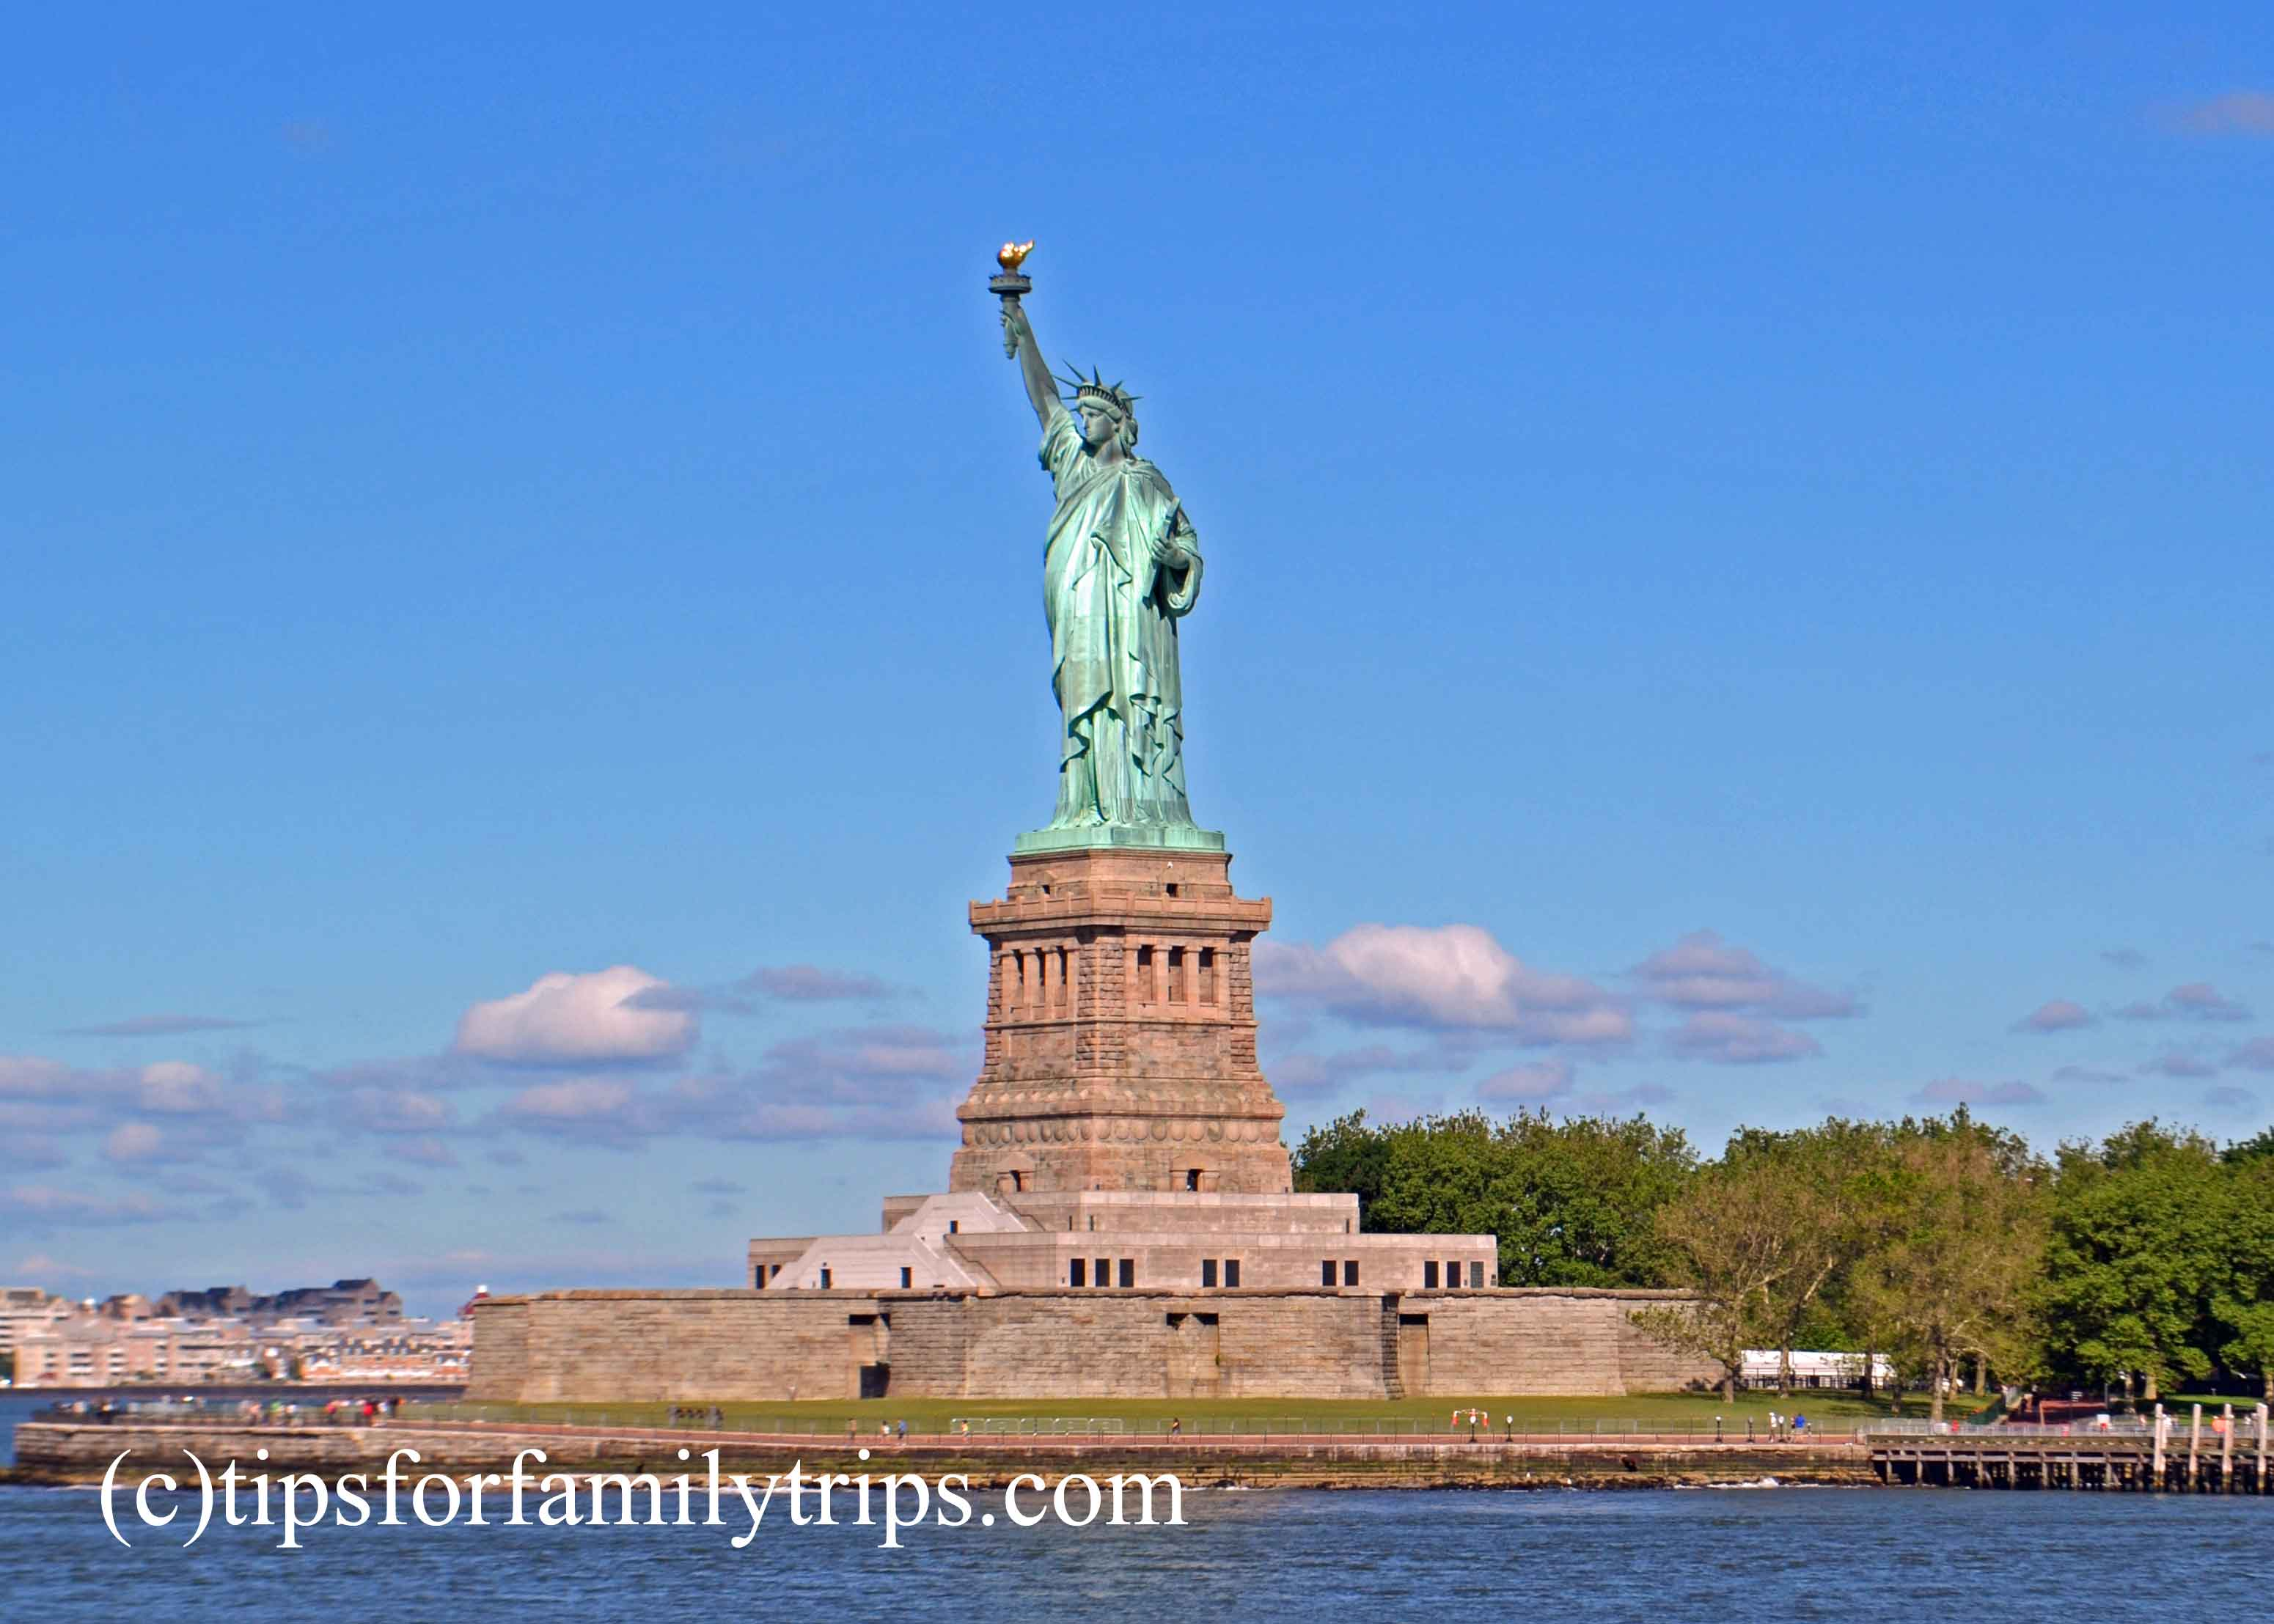 6 Smart Tips For Visiting The Statue Of Liberty With Kids